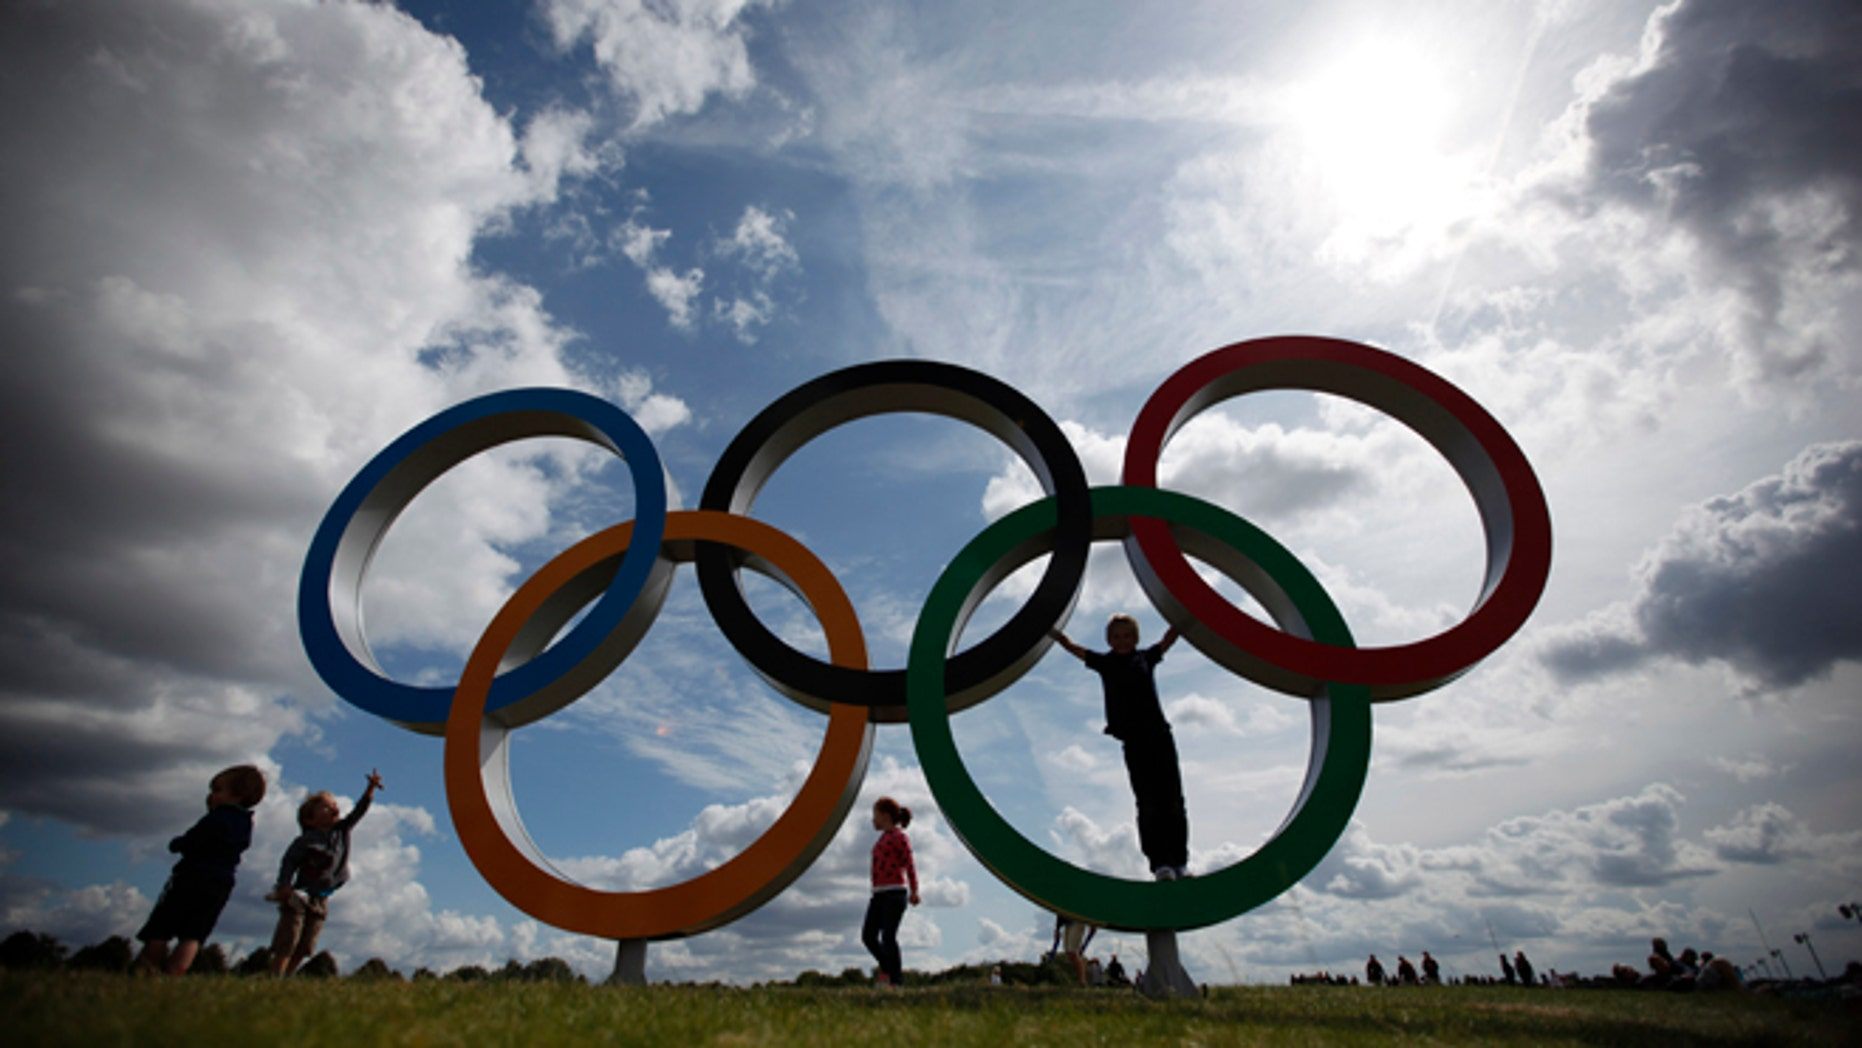 July 30, 2012: Children play on the Olympic rings at the rowing venue.